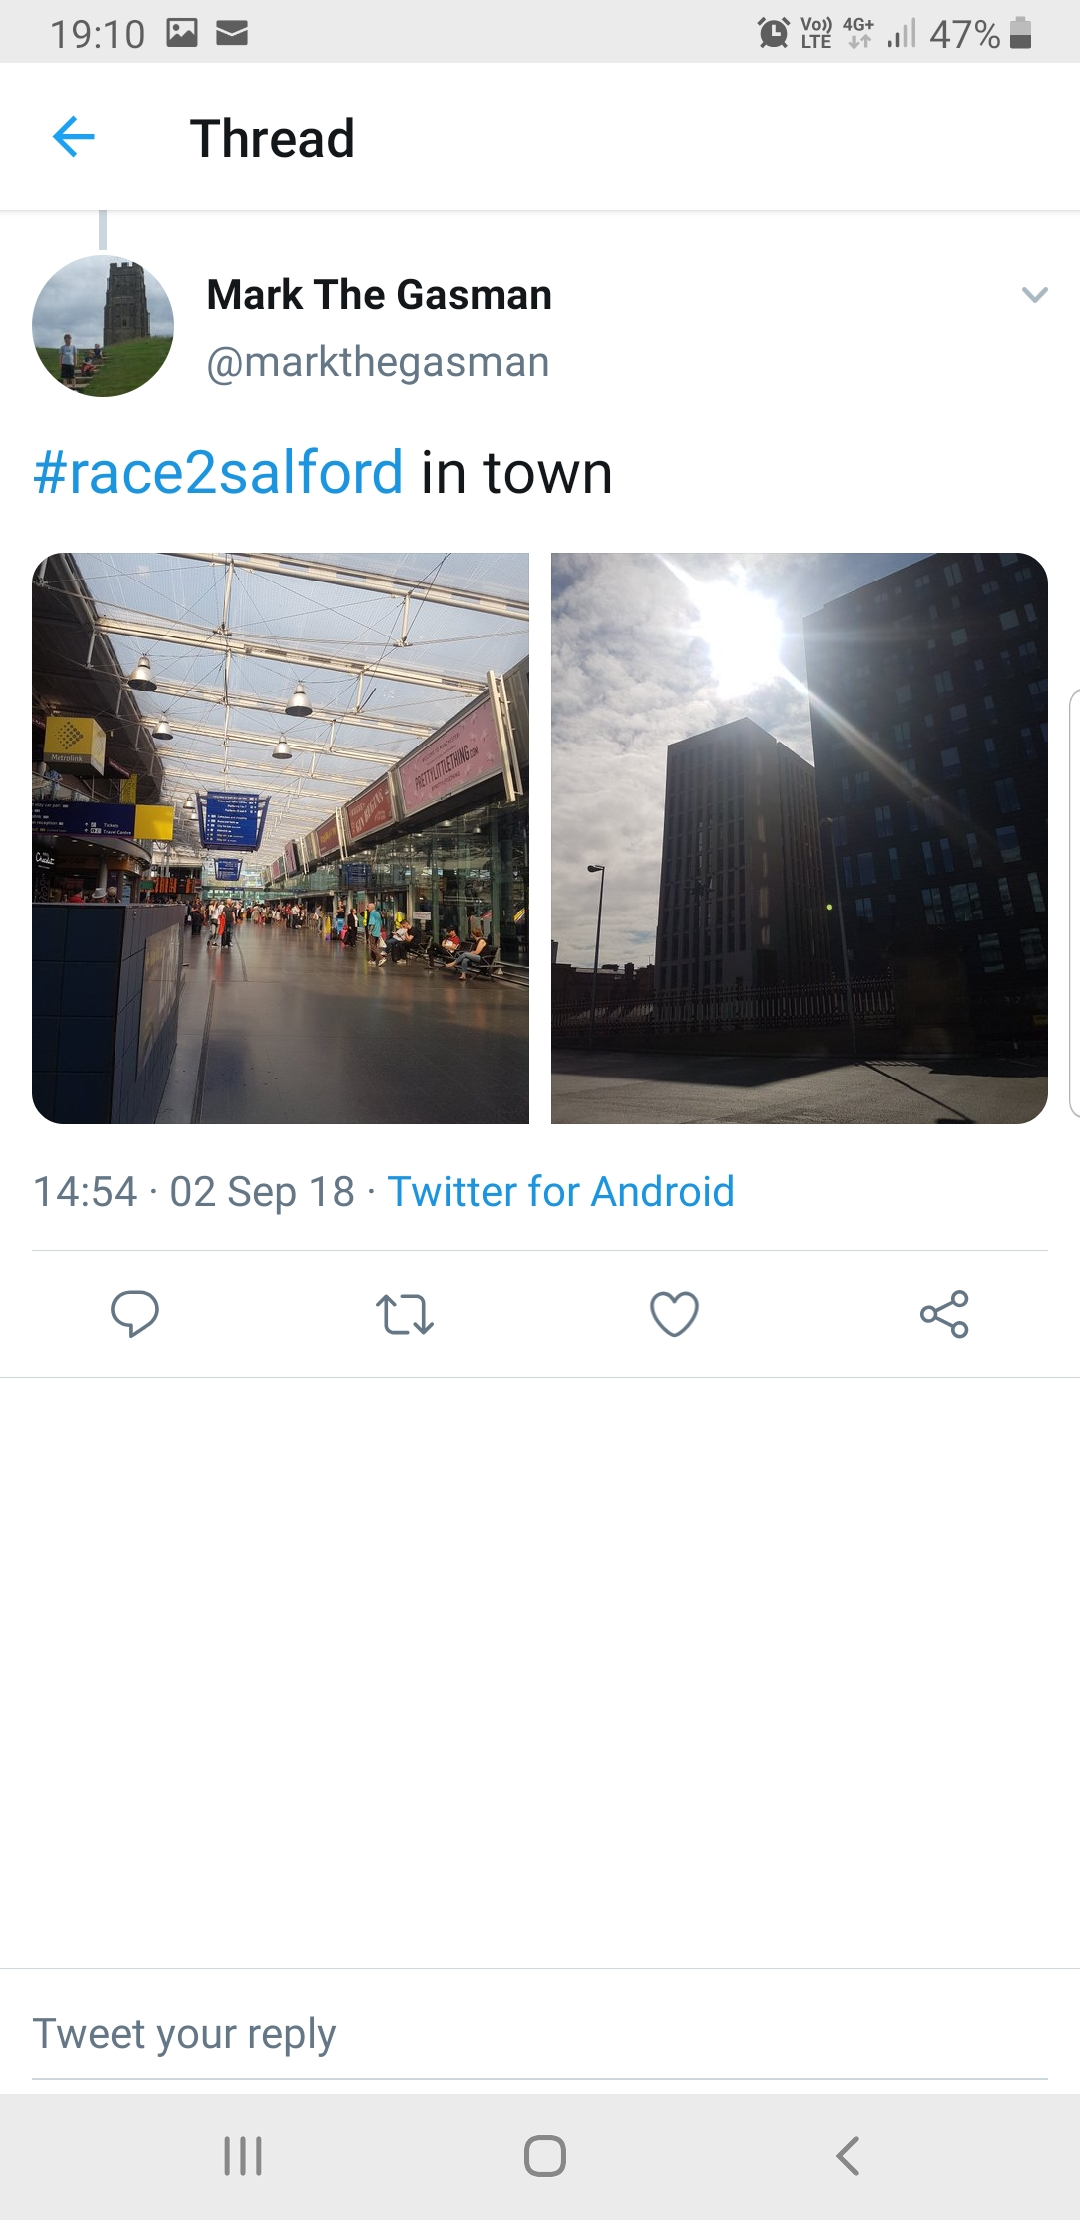 Screenshot_20190715-191032_Twitter.jpg